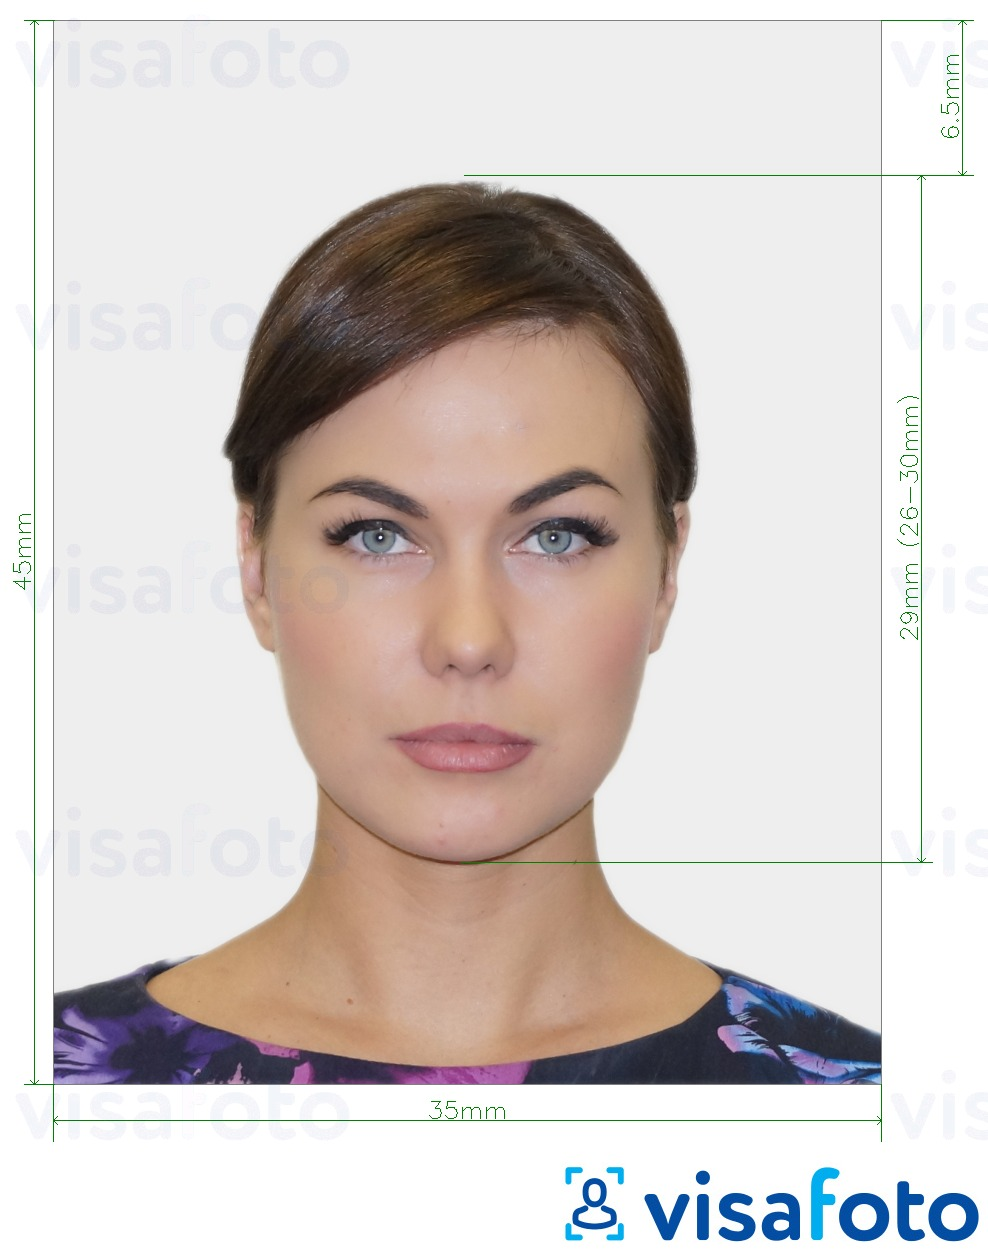 Example of photo for Netherlands Visa with exact size specification